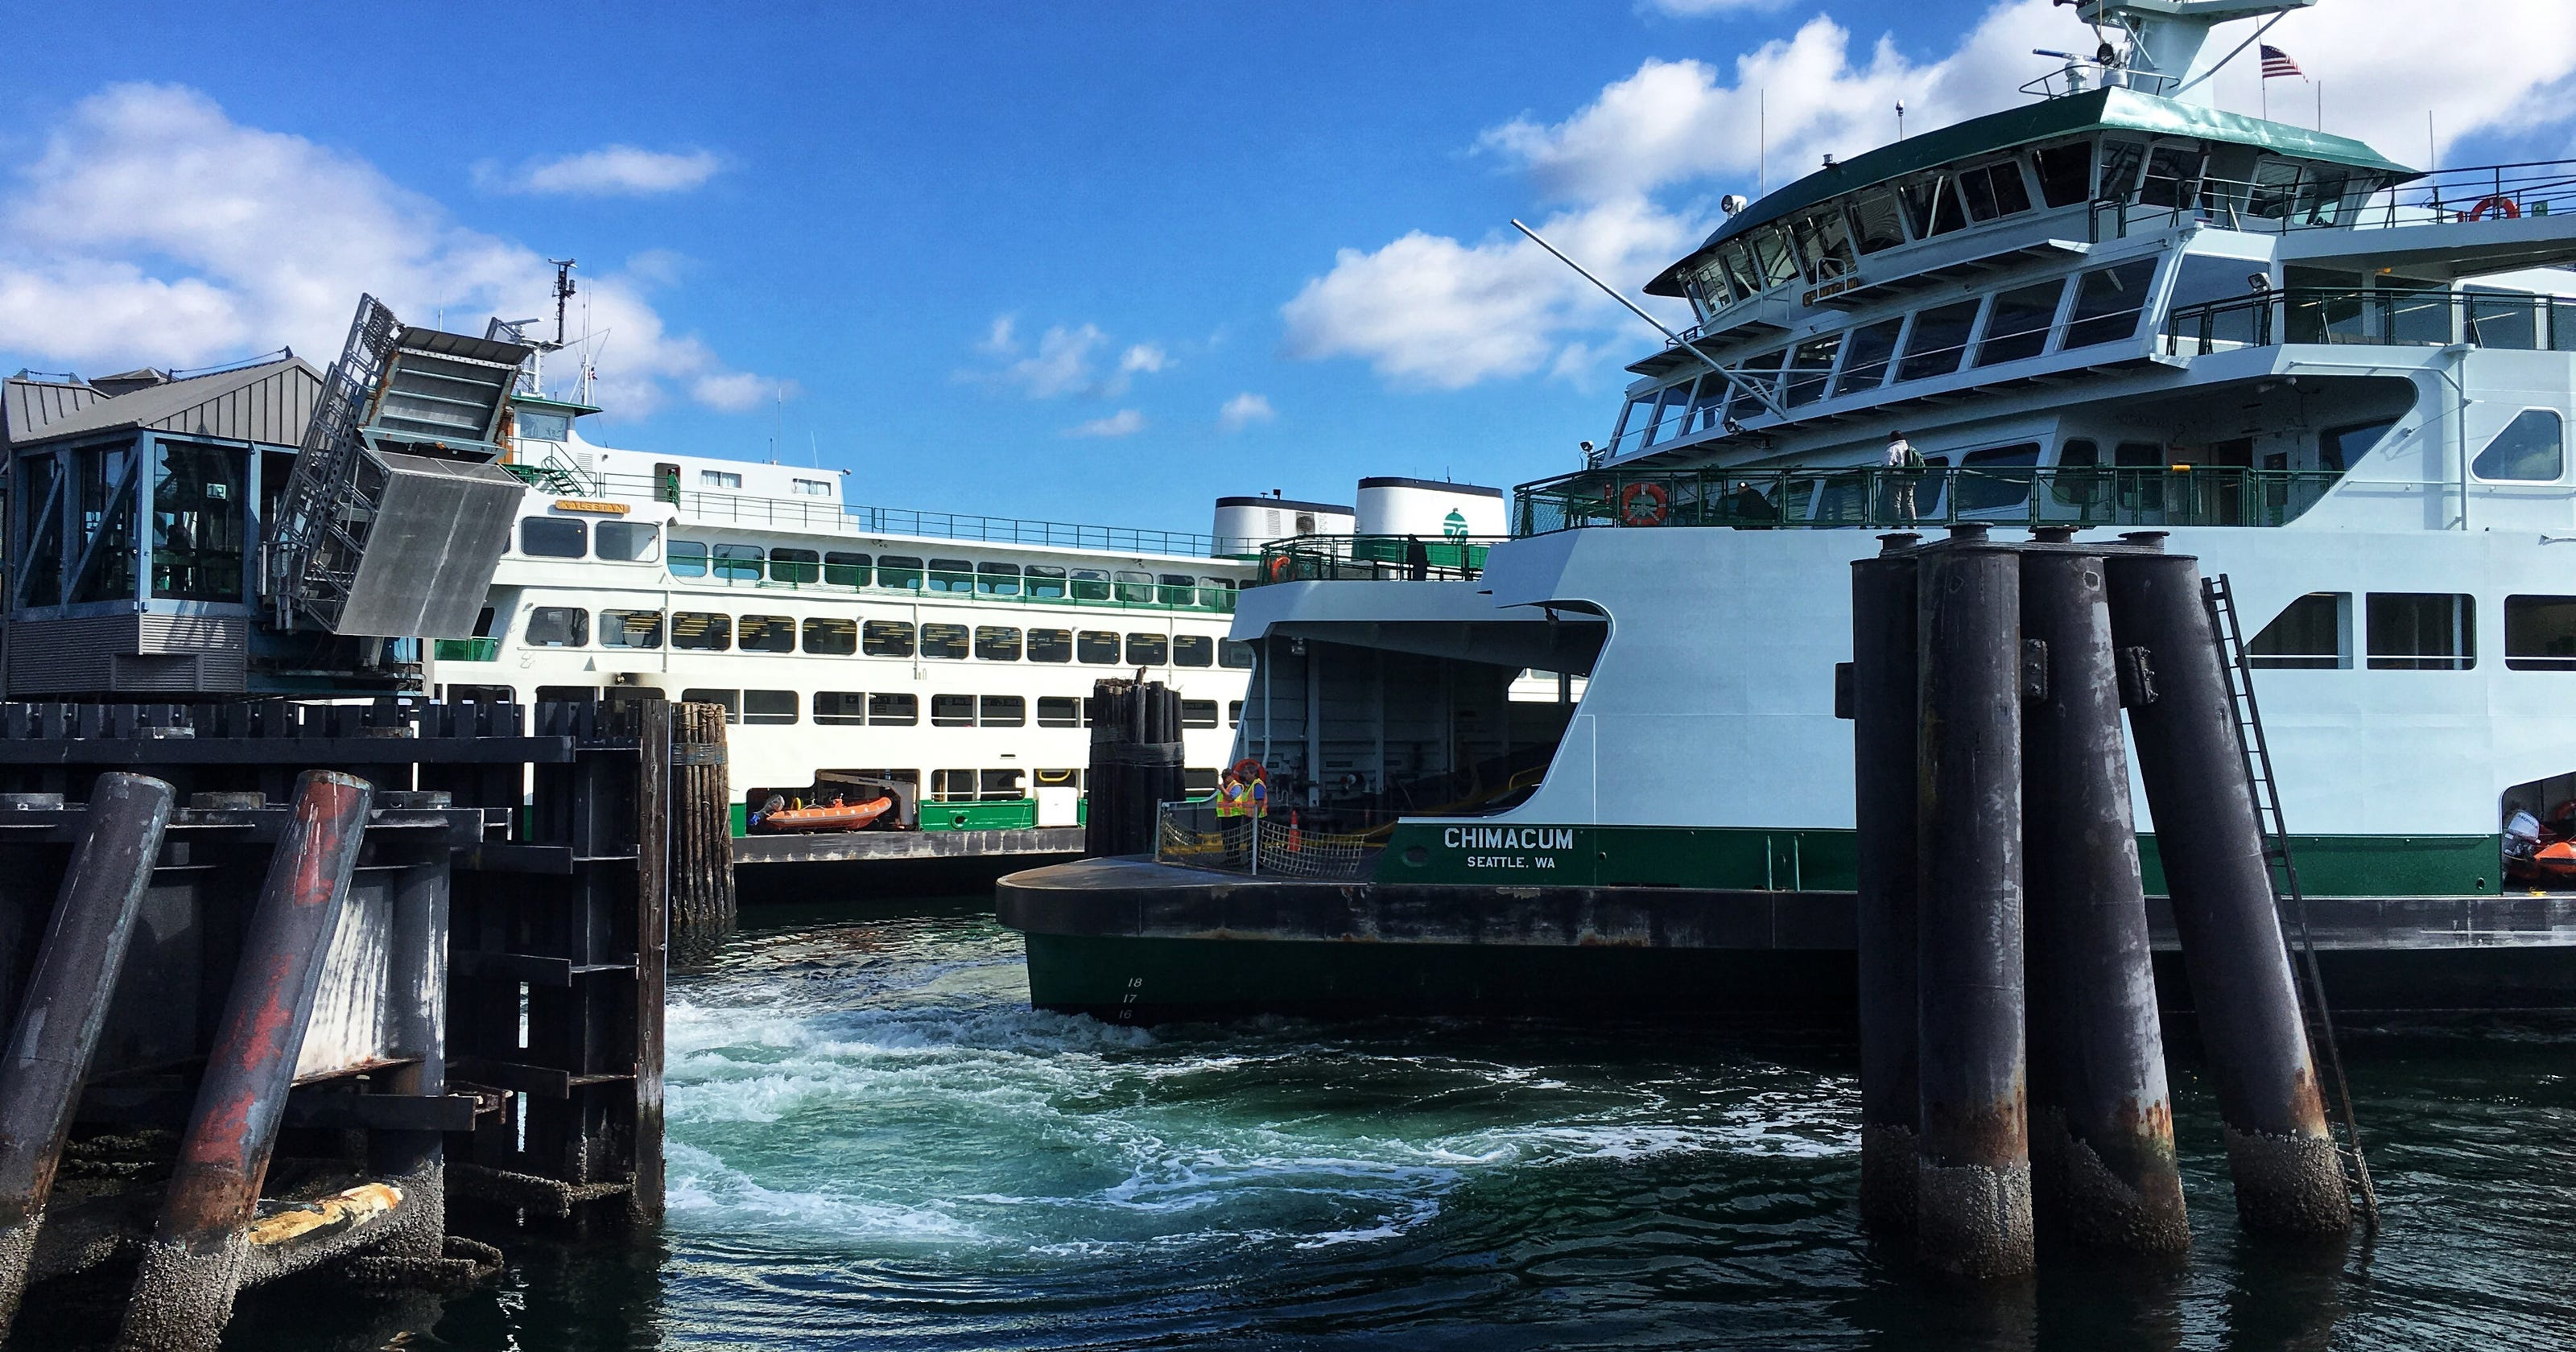 Ferries' effort to throttle back to save fuel delays Bremerton run